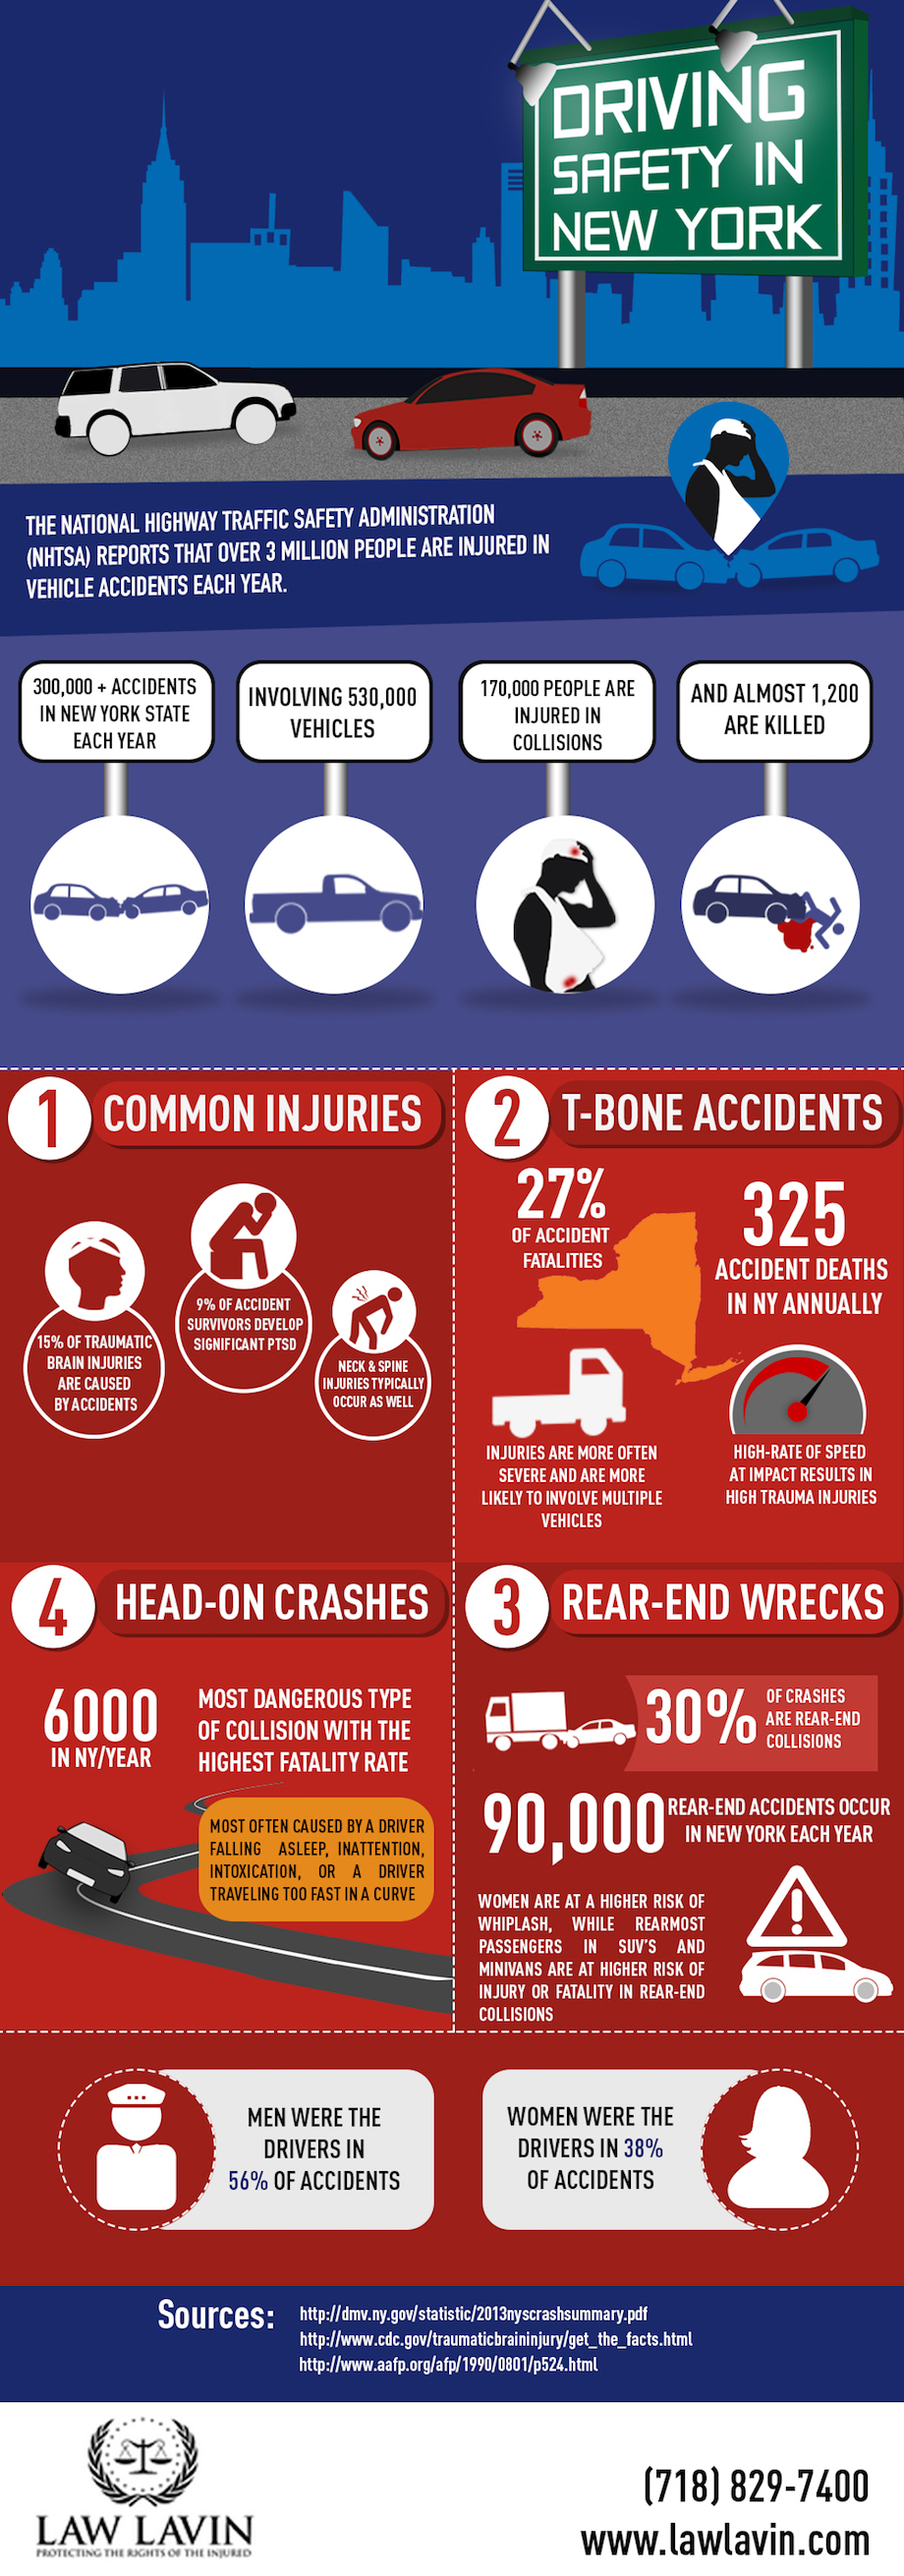 Driving Safety In New York (1)